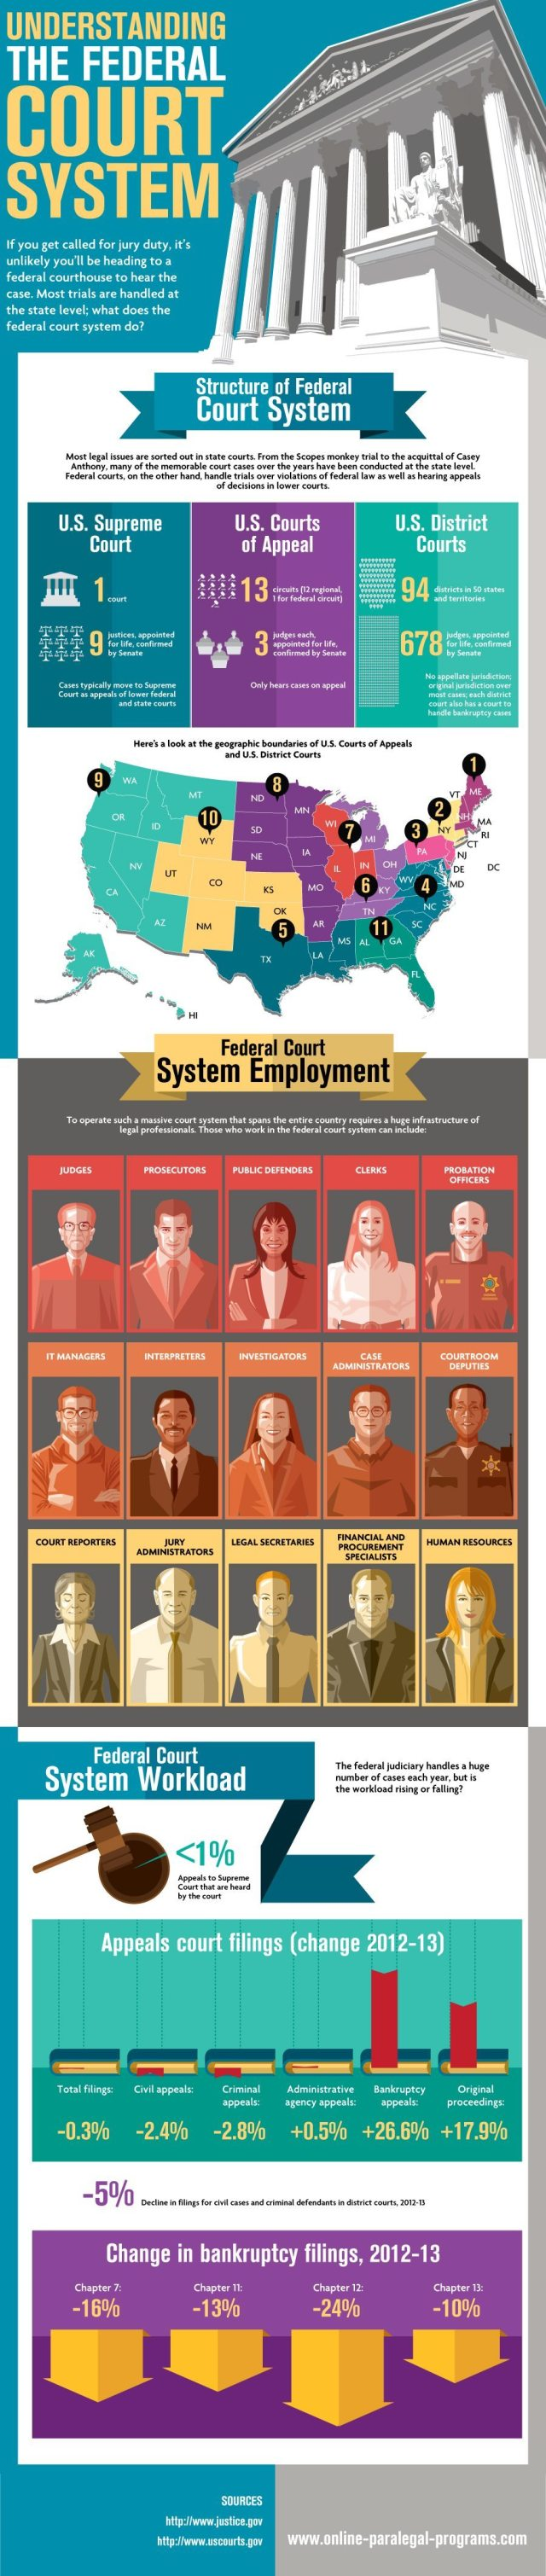 info1 - Legal services that exist in the American justice system